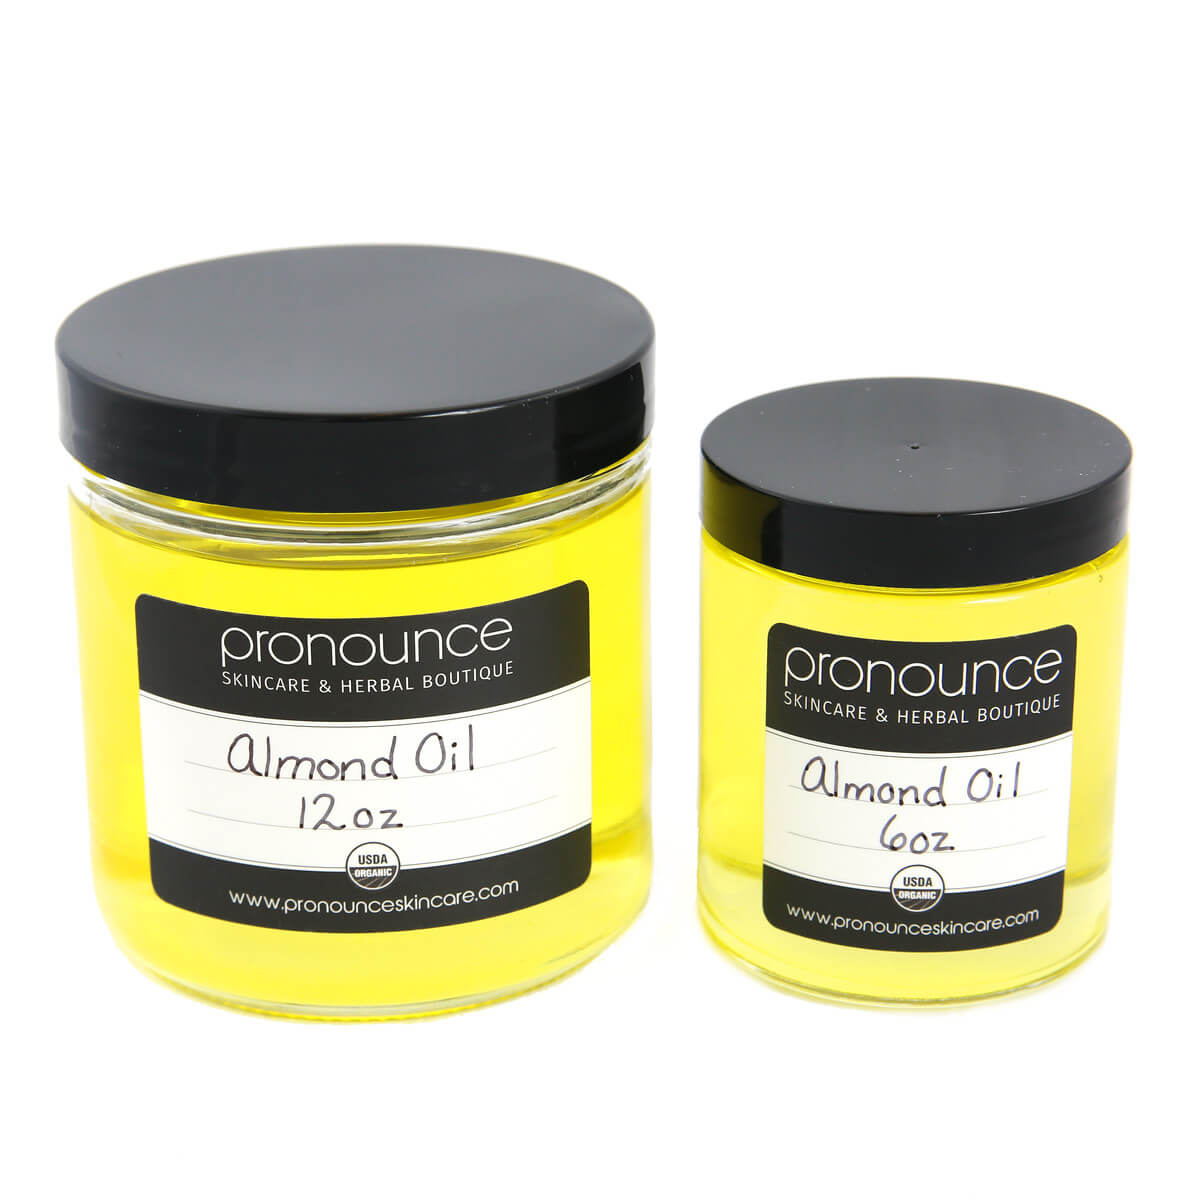 Certified Organic Almond Oil 2sizes Pronounce Skincare & Herbal Boutique